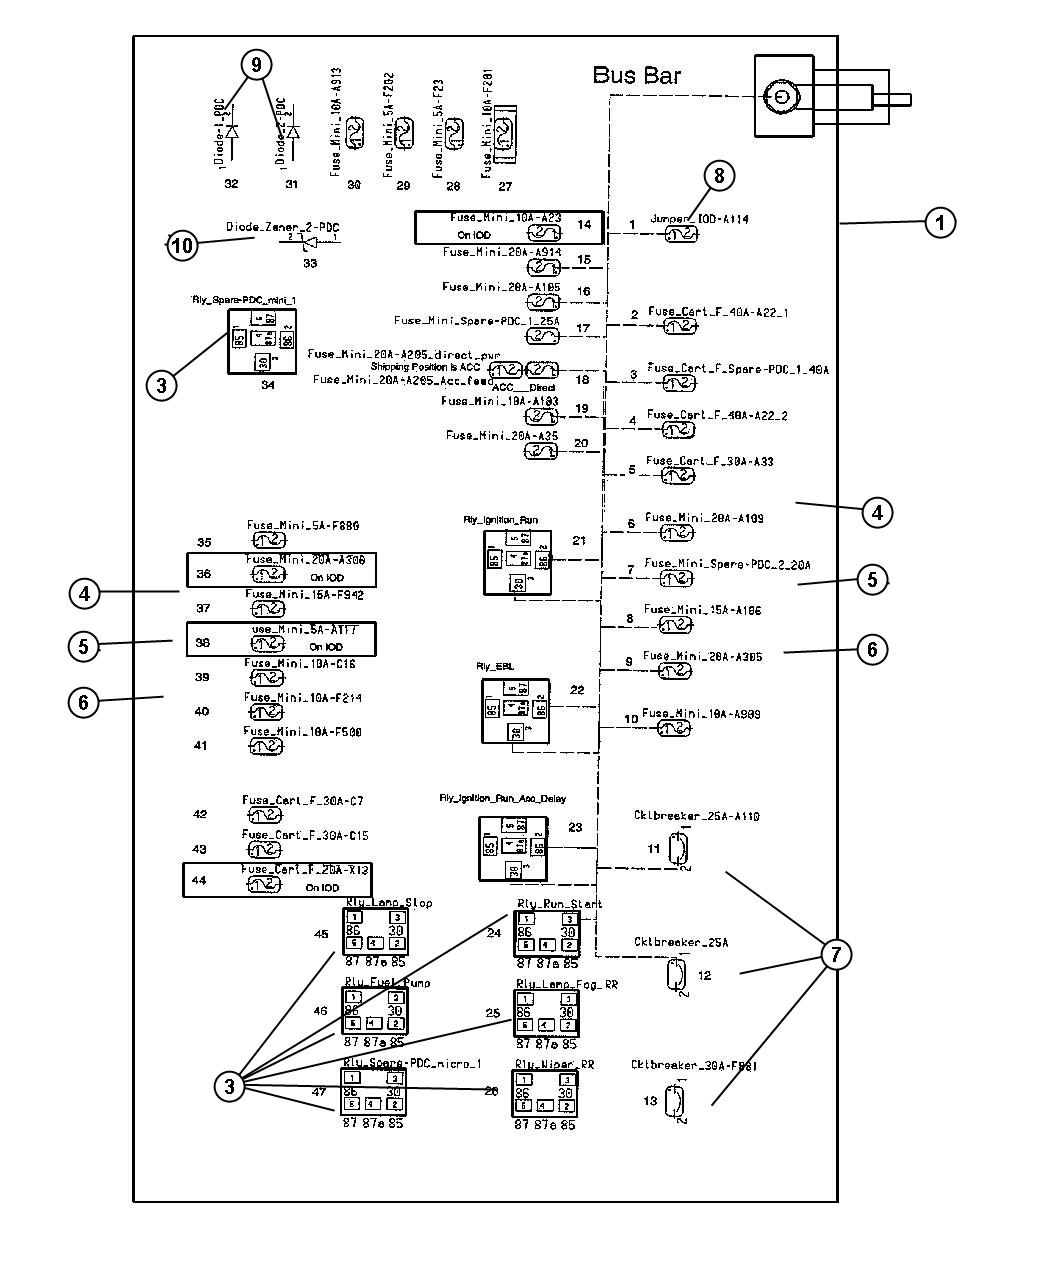 2006 dodge charger rt trunk fuse panel diagram 2 192006 dodge charger fuse panel diagram wiring diagram rh 13 ansolsolder co 2006 charger fuse box